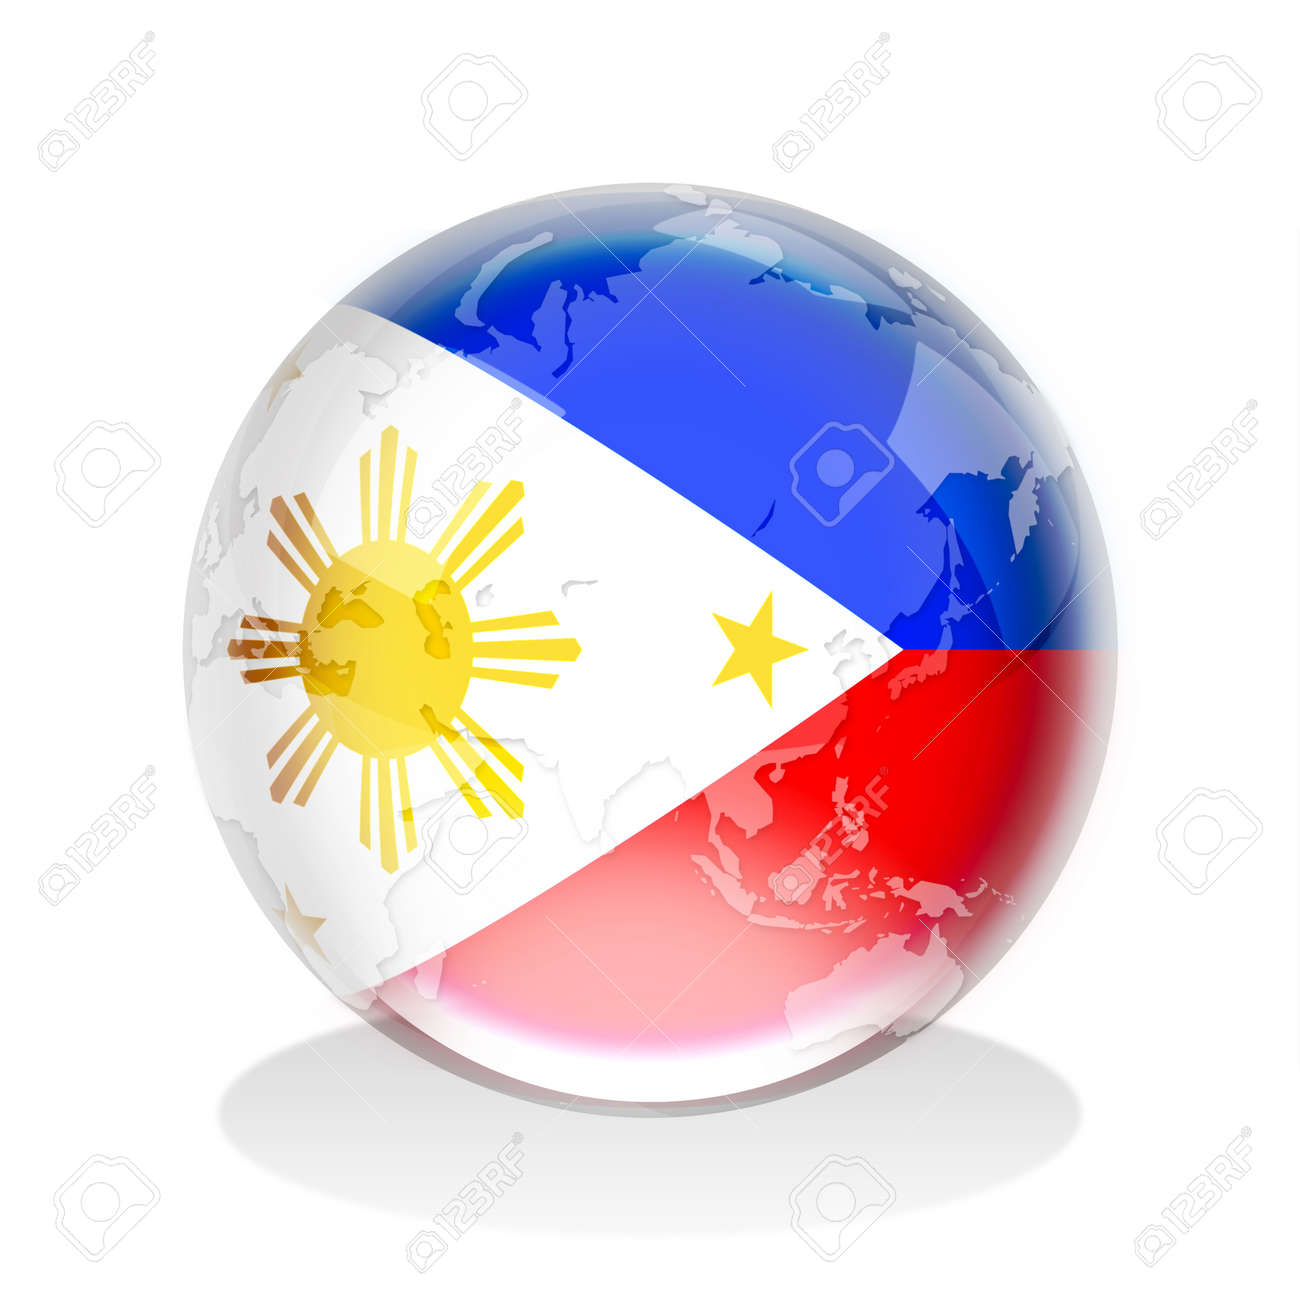 Crystal Sphere Of Philippines Flag With World Map Stock Photo ...